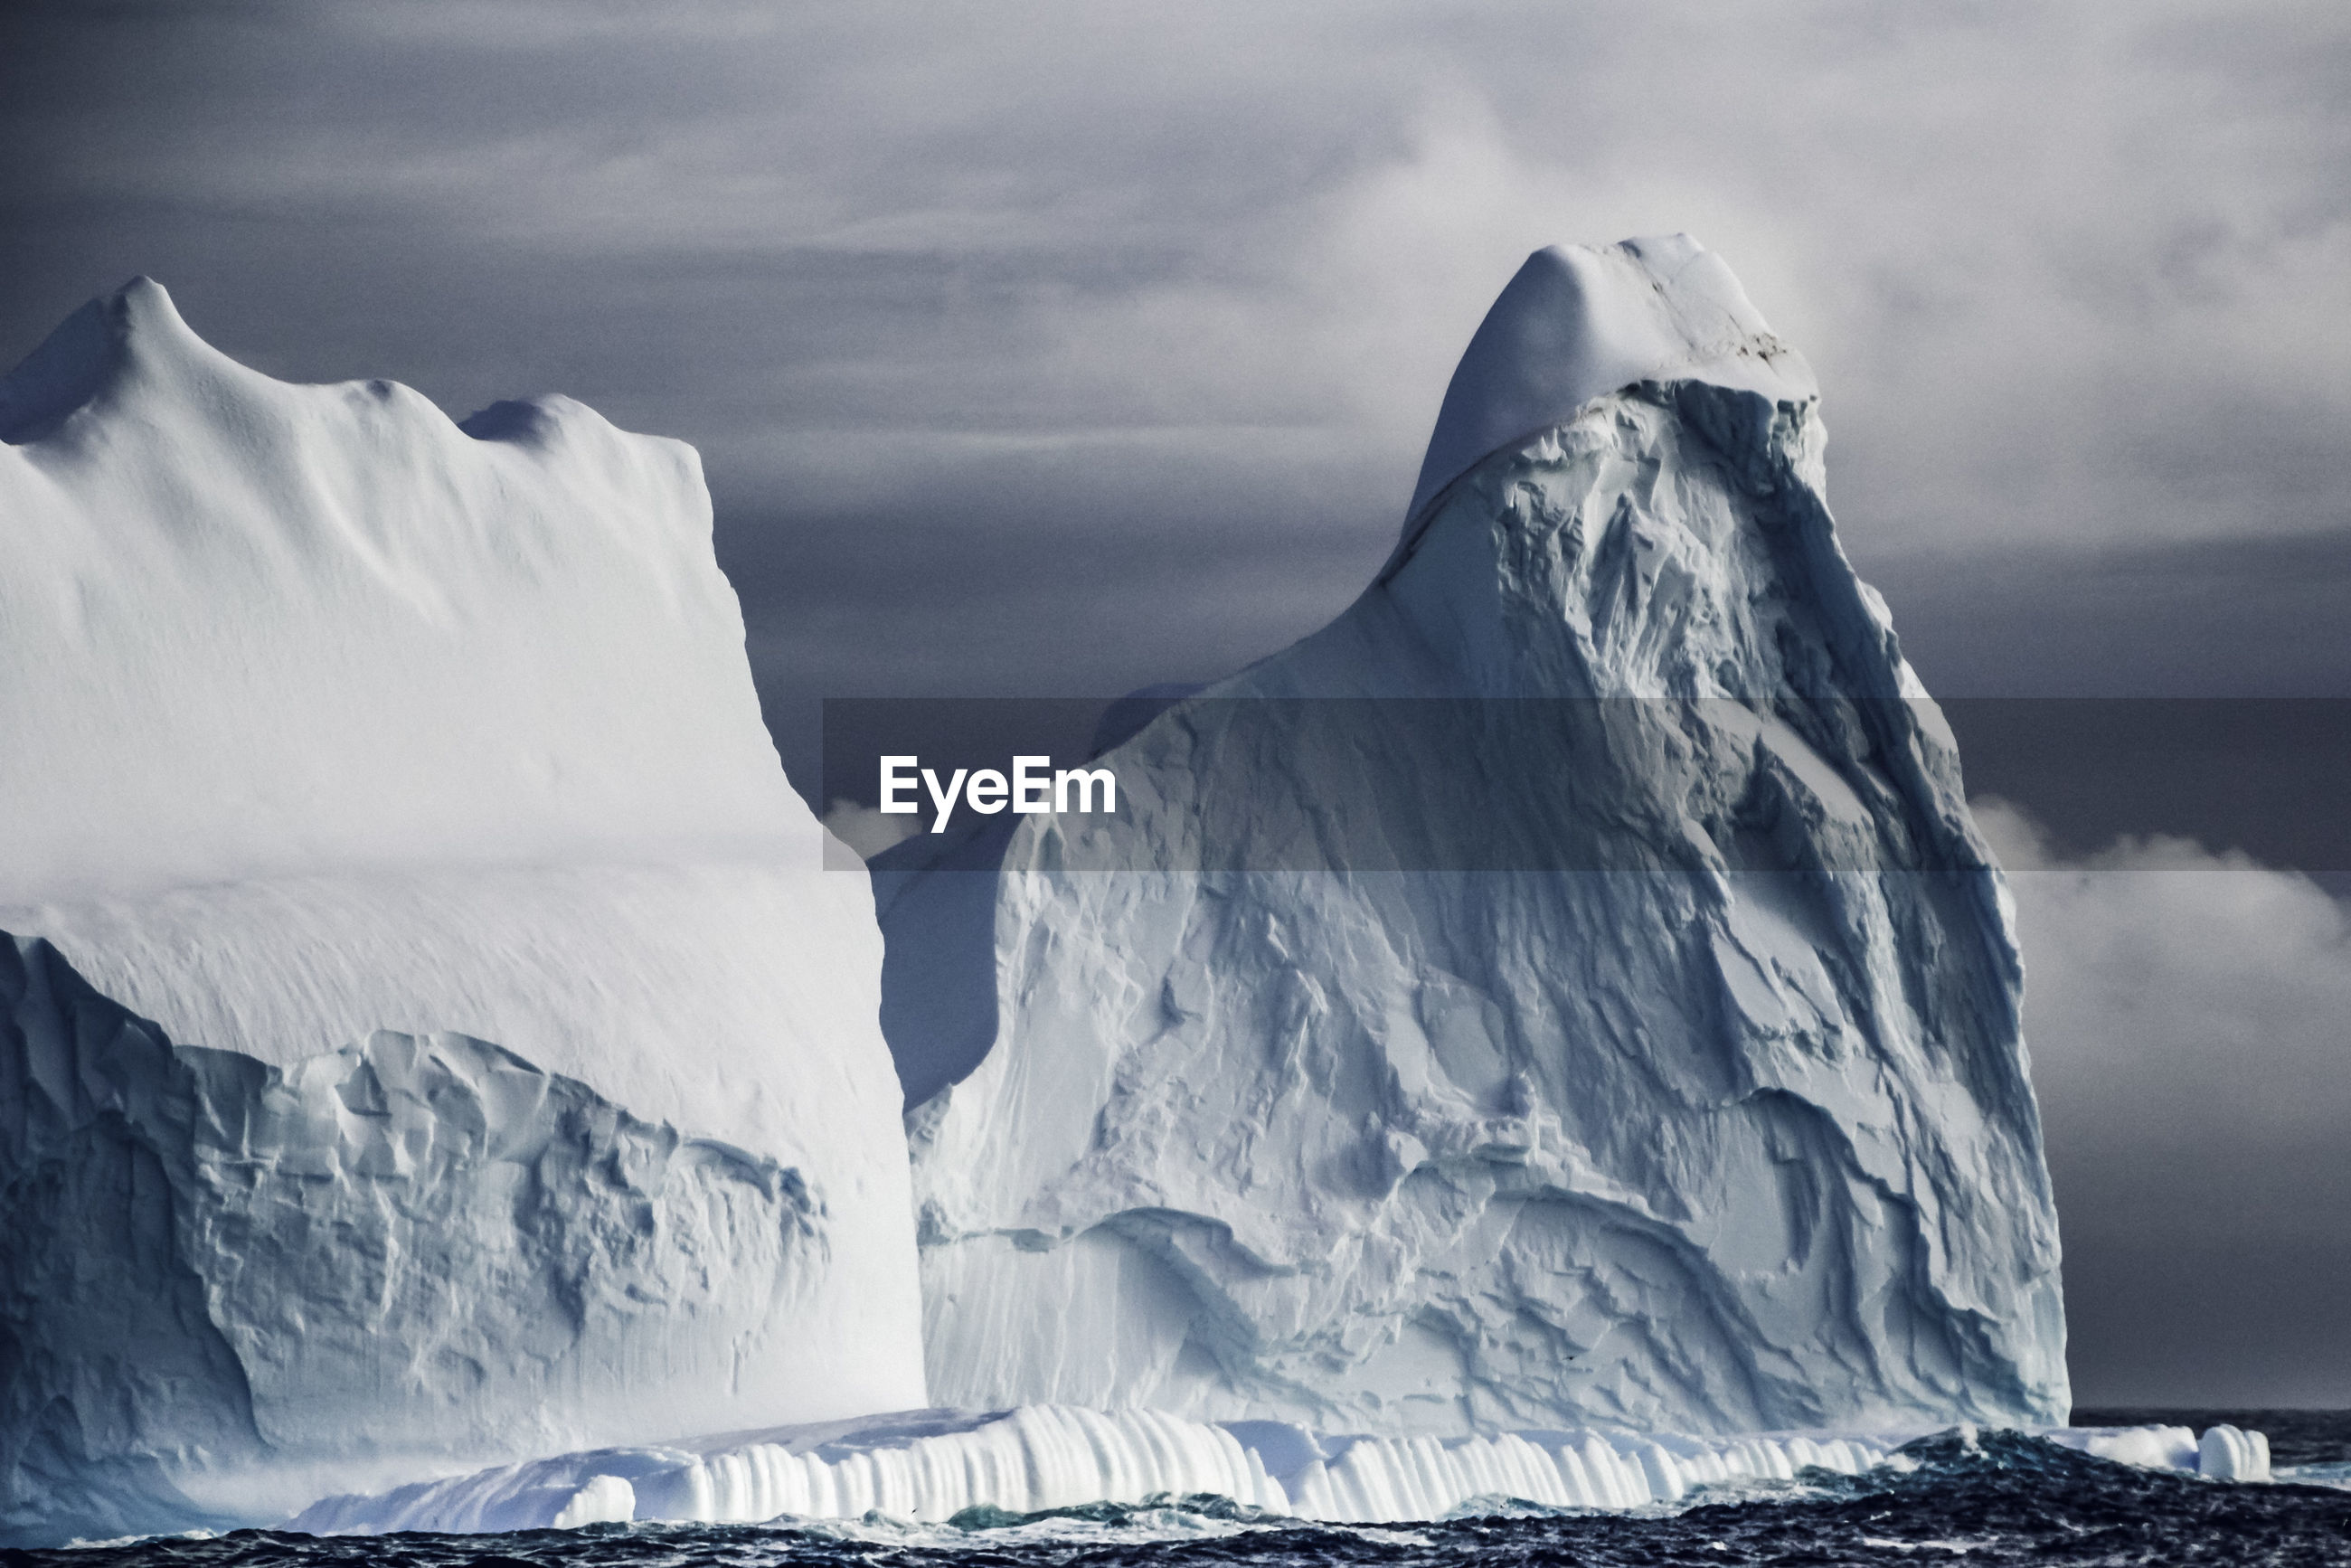 Scenic view of icebergs against cloudy sky